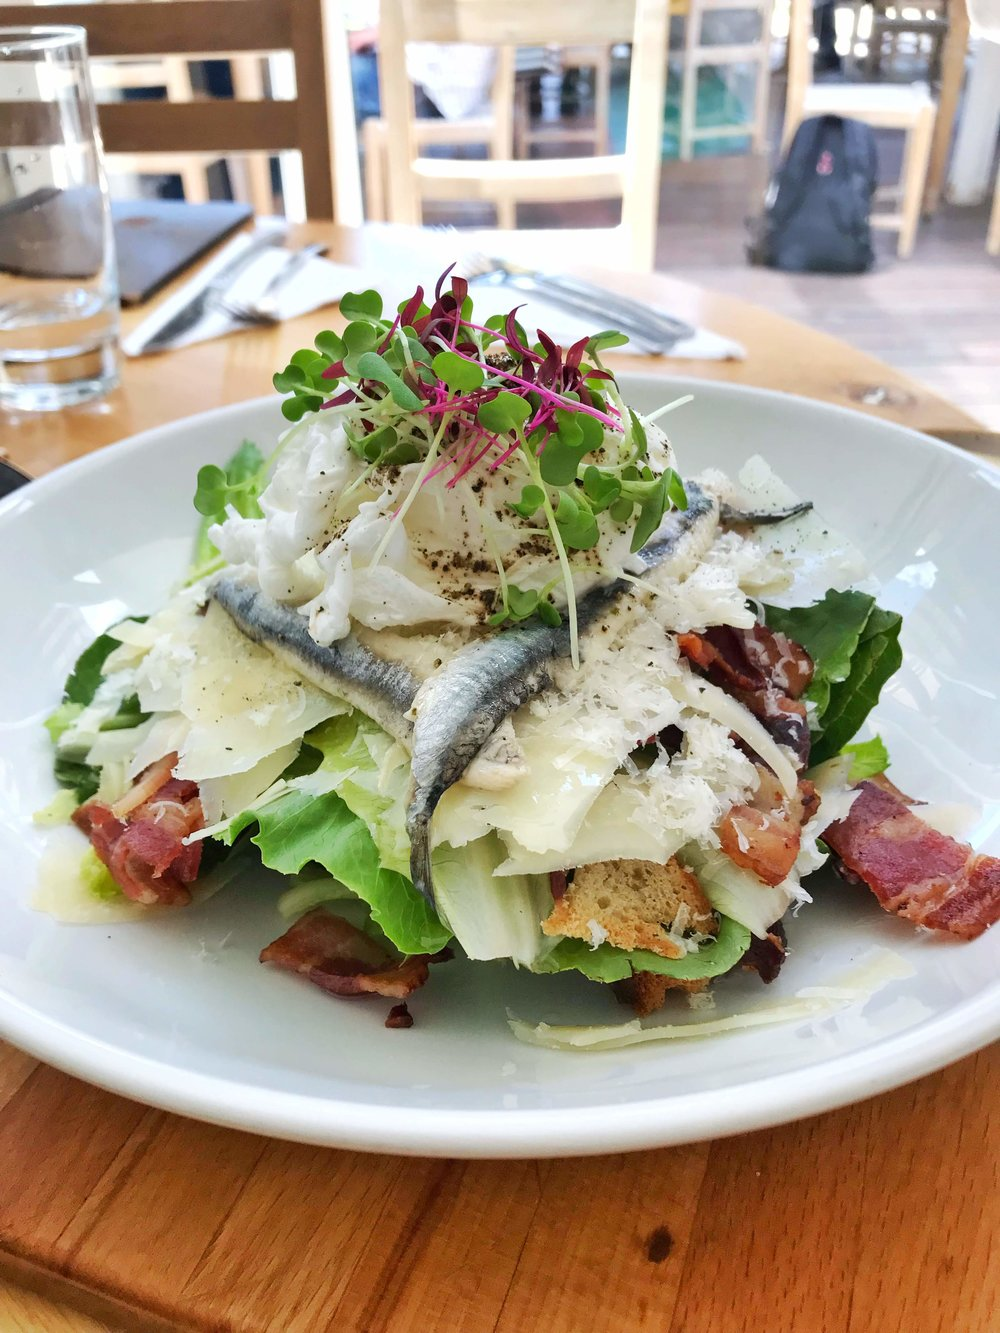 Lunch at Tokara Delicatessen - So happy we ended up eating here, because it was so so good! This was a Caesar Salad and it's one of the best ones we've had!